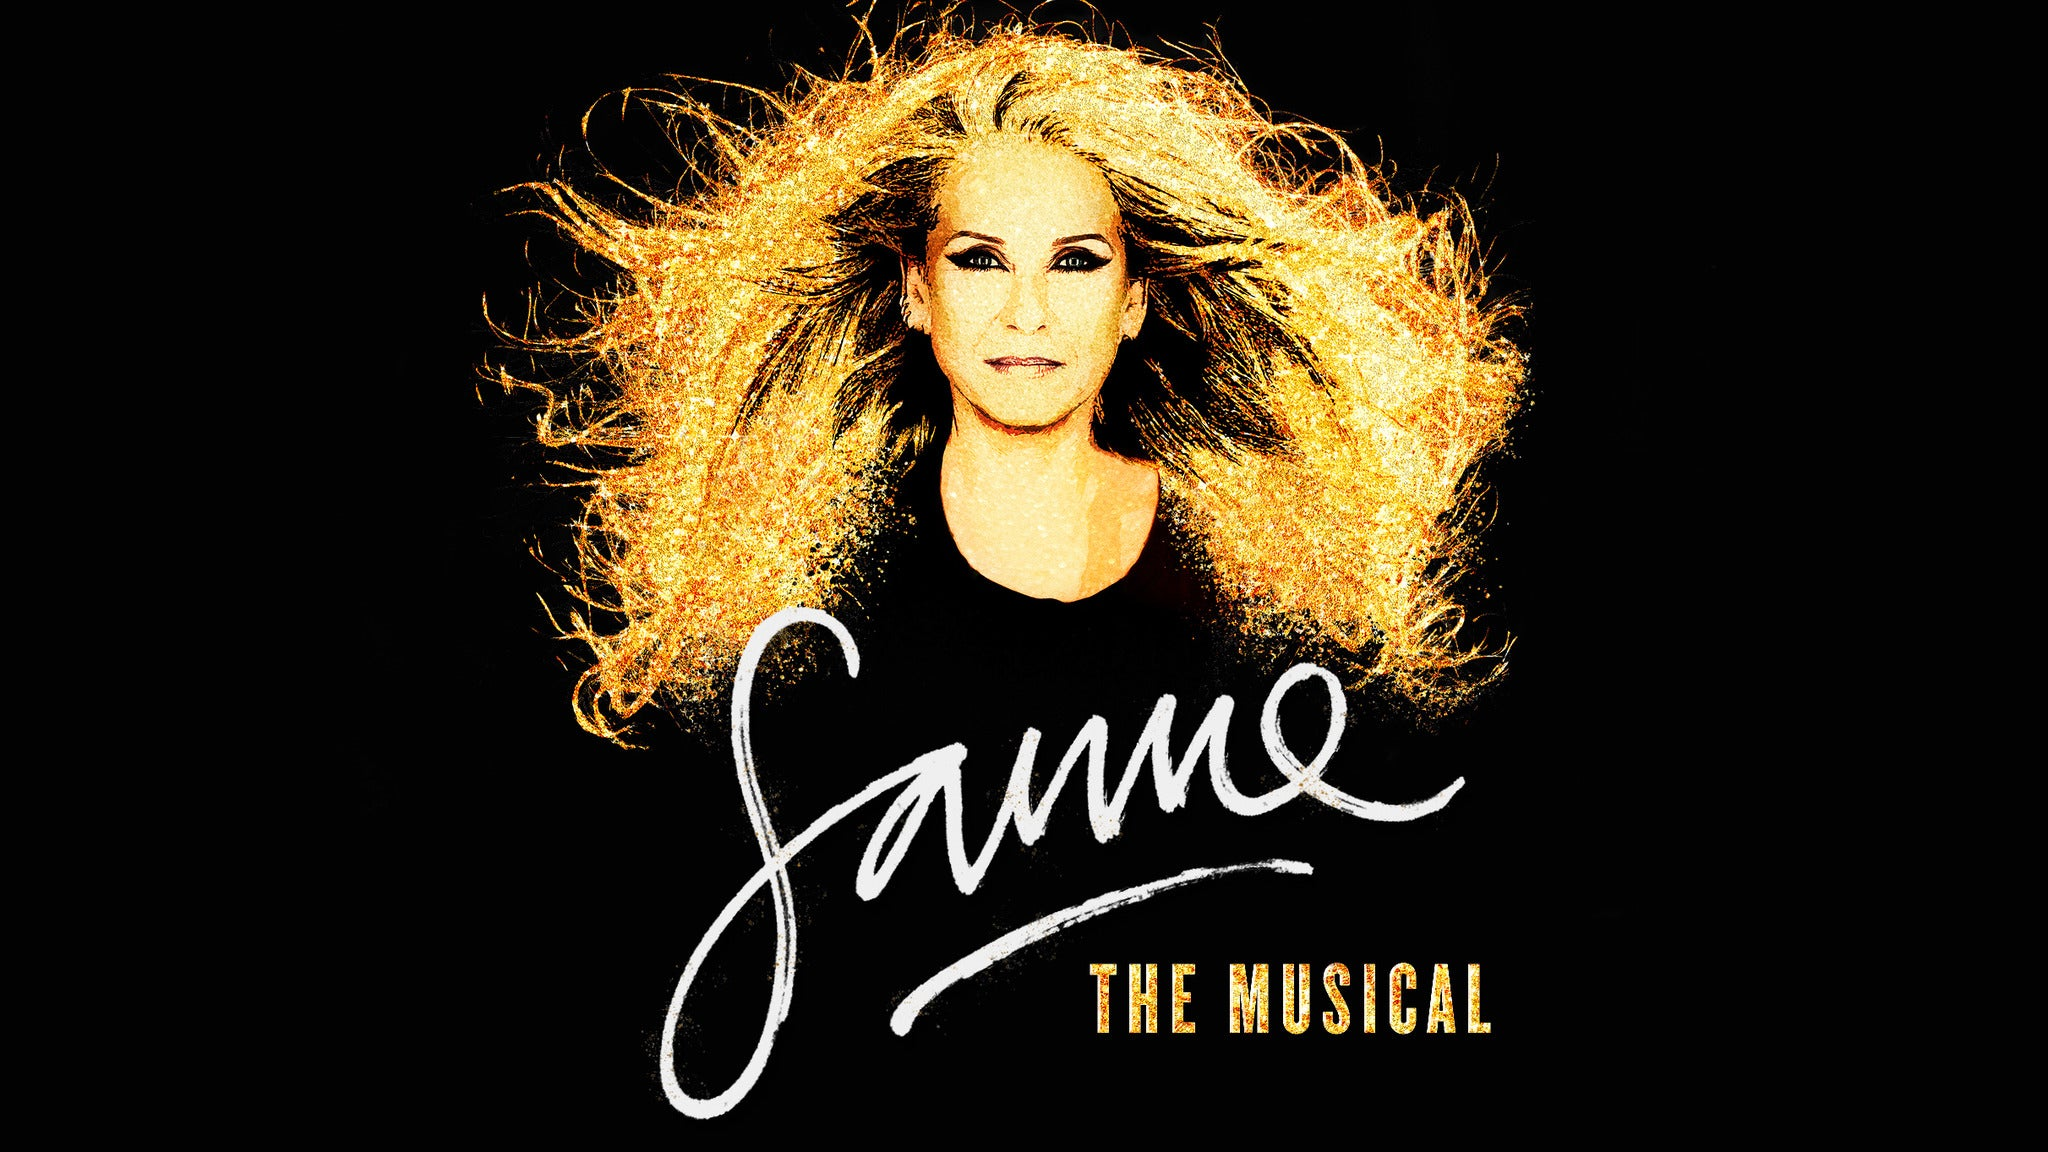 Sanne - The Musical - Hot Ticket